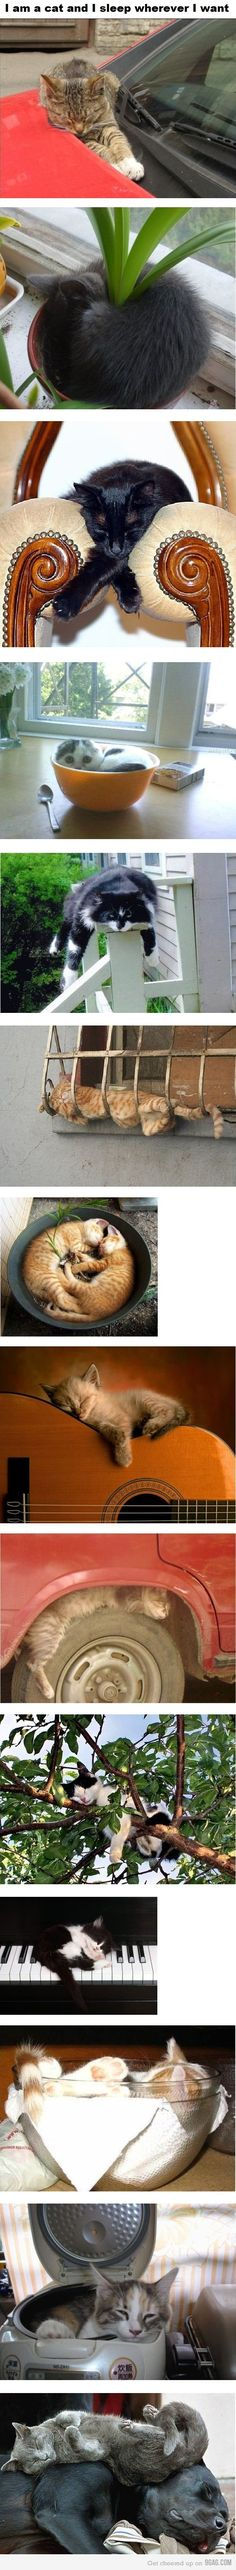 20 Funny Photos Of Cats Sleeping In Awkward Positions cute animals cat cats adorable animal kittens pets kitten funny pictures funny animals funny cats - Tap the link now to see all of our cool cat collections! Animals And Pets, Funny Animals, Cute Animals, Funny Dogs, Strange Animals, Funny Humor, Baby Animals, Crazy Cat Lady, Crazy Cats